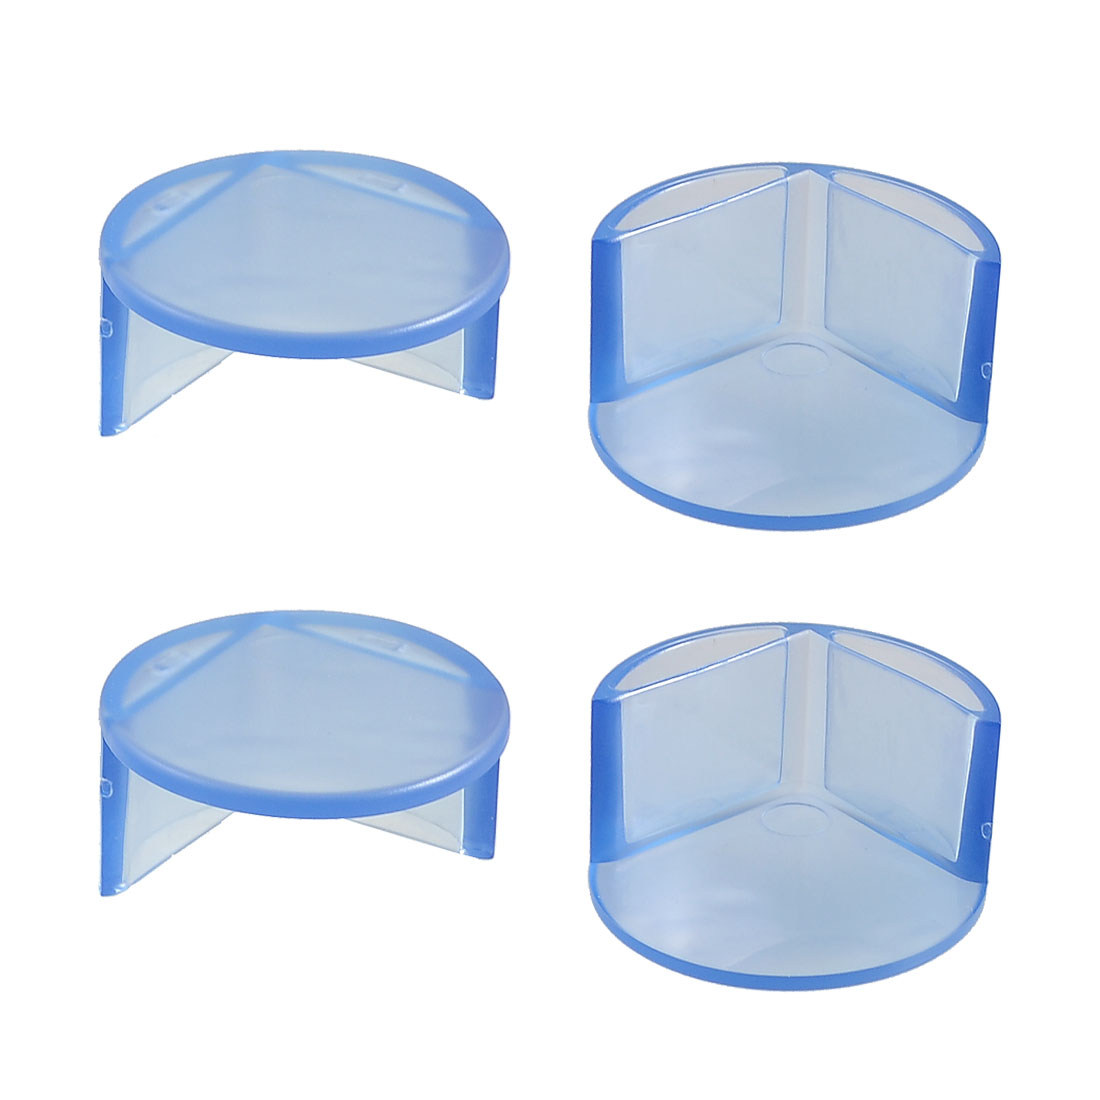 Clear Blue Plastic Desk Table Corner Cushion Safety Pad Cover 4 Pcs